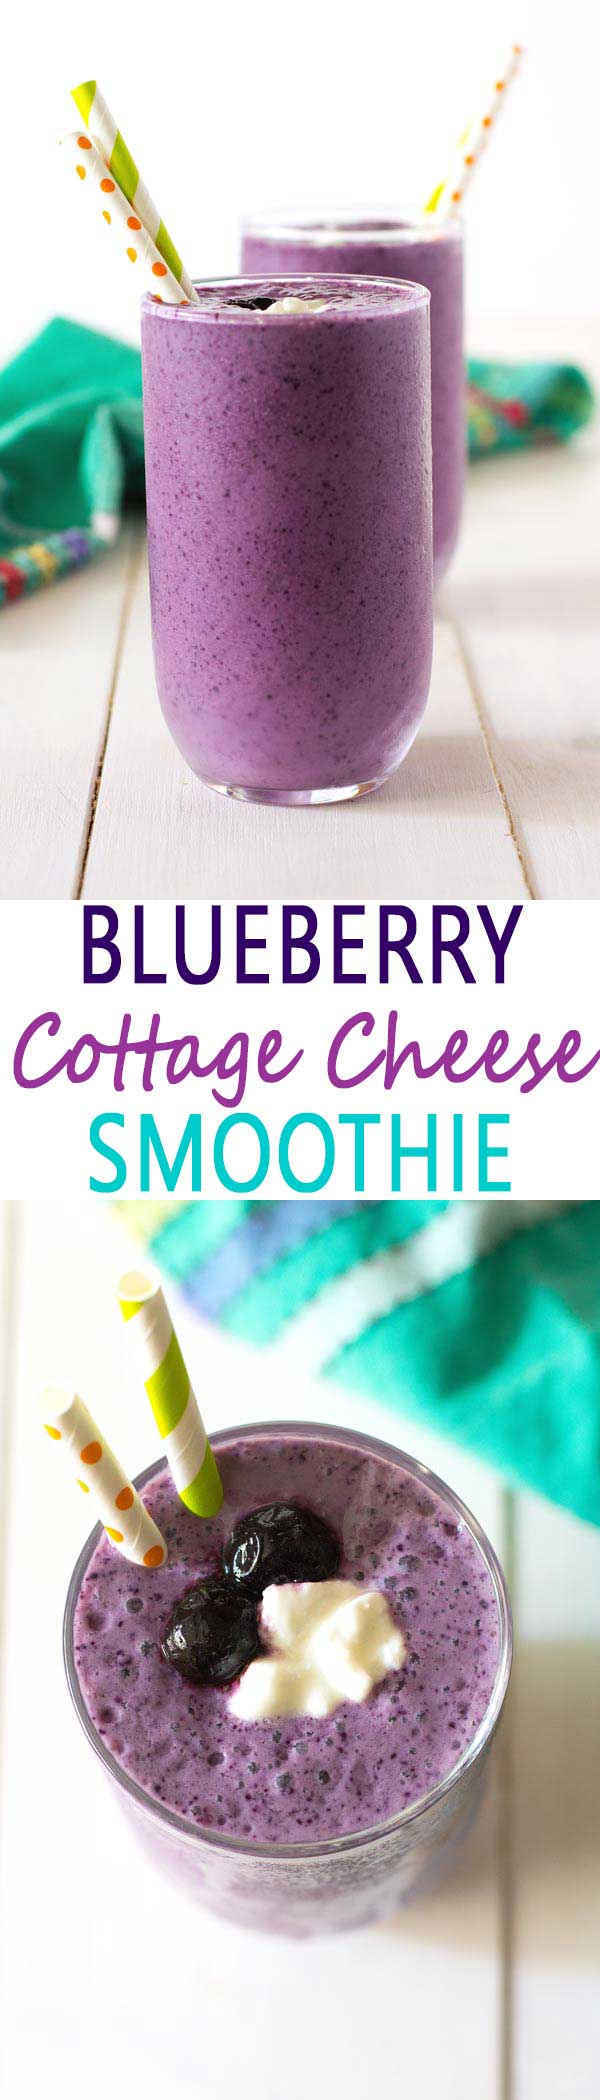 Awe Inspiring Blueberry Cottage Cheese Smoothie Recipe Download Free Architecture Designs Aeocymadebymaigaardcom